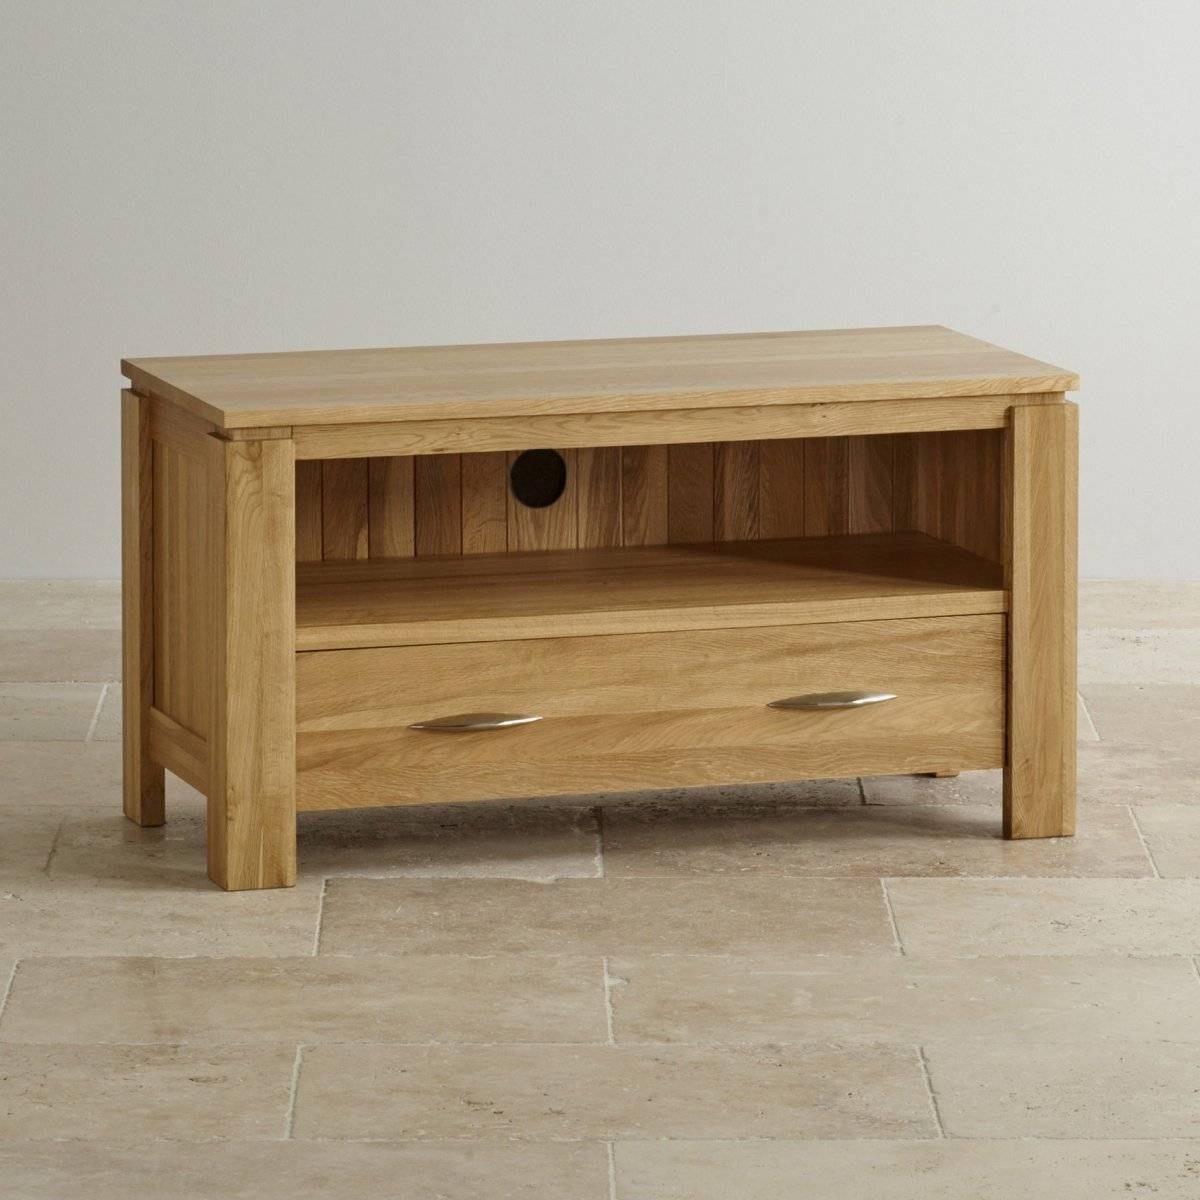 Galway Natural Solid Oak Tv + Dvd Stand | Living Room Furniture within Small Tv Cabinets (Image 3 of 15)